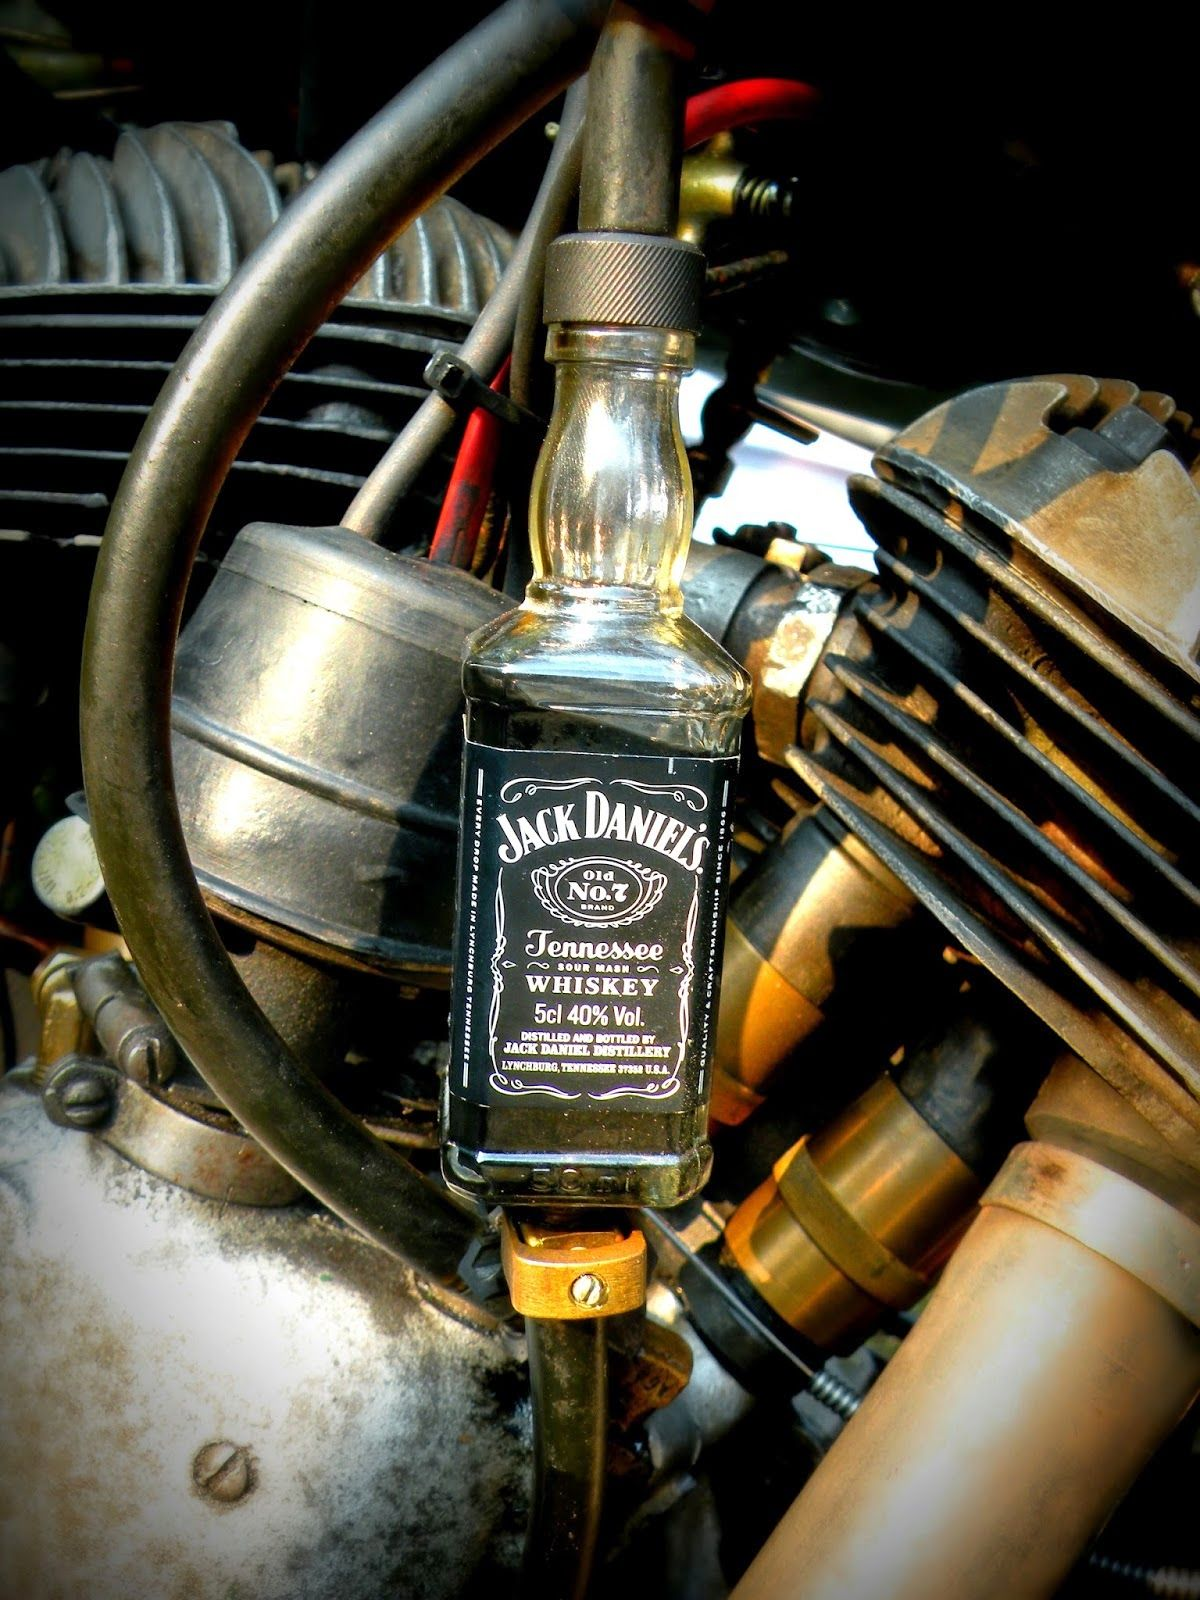 jack daniels oil filter fuel filter jack daniels motorcycle oil filter motorcycle fuel filter custom motorcycle part was crafted by bastybikes art if  [ 1200 x 1600 Pixel ]